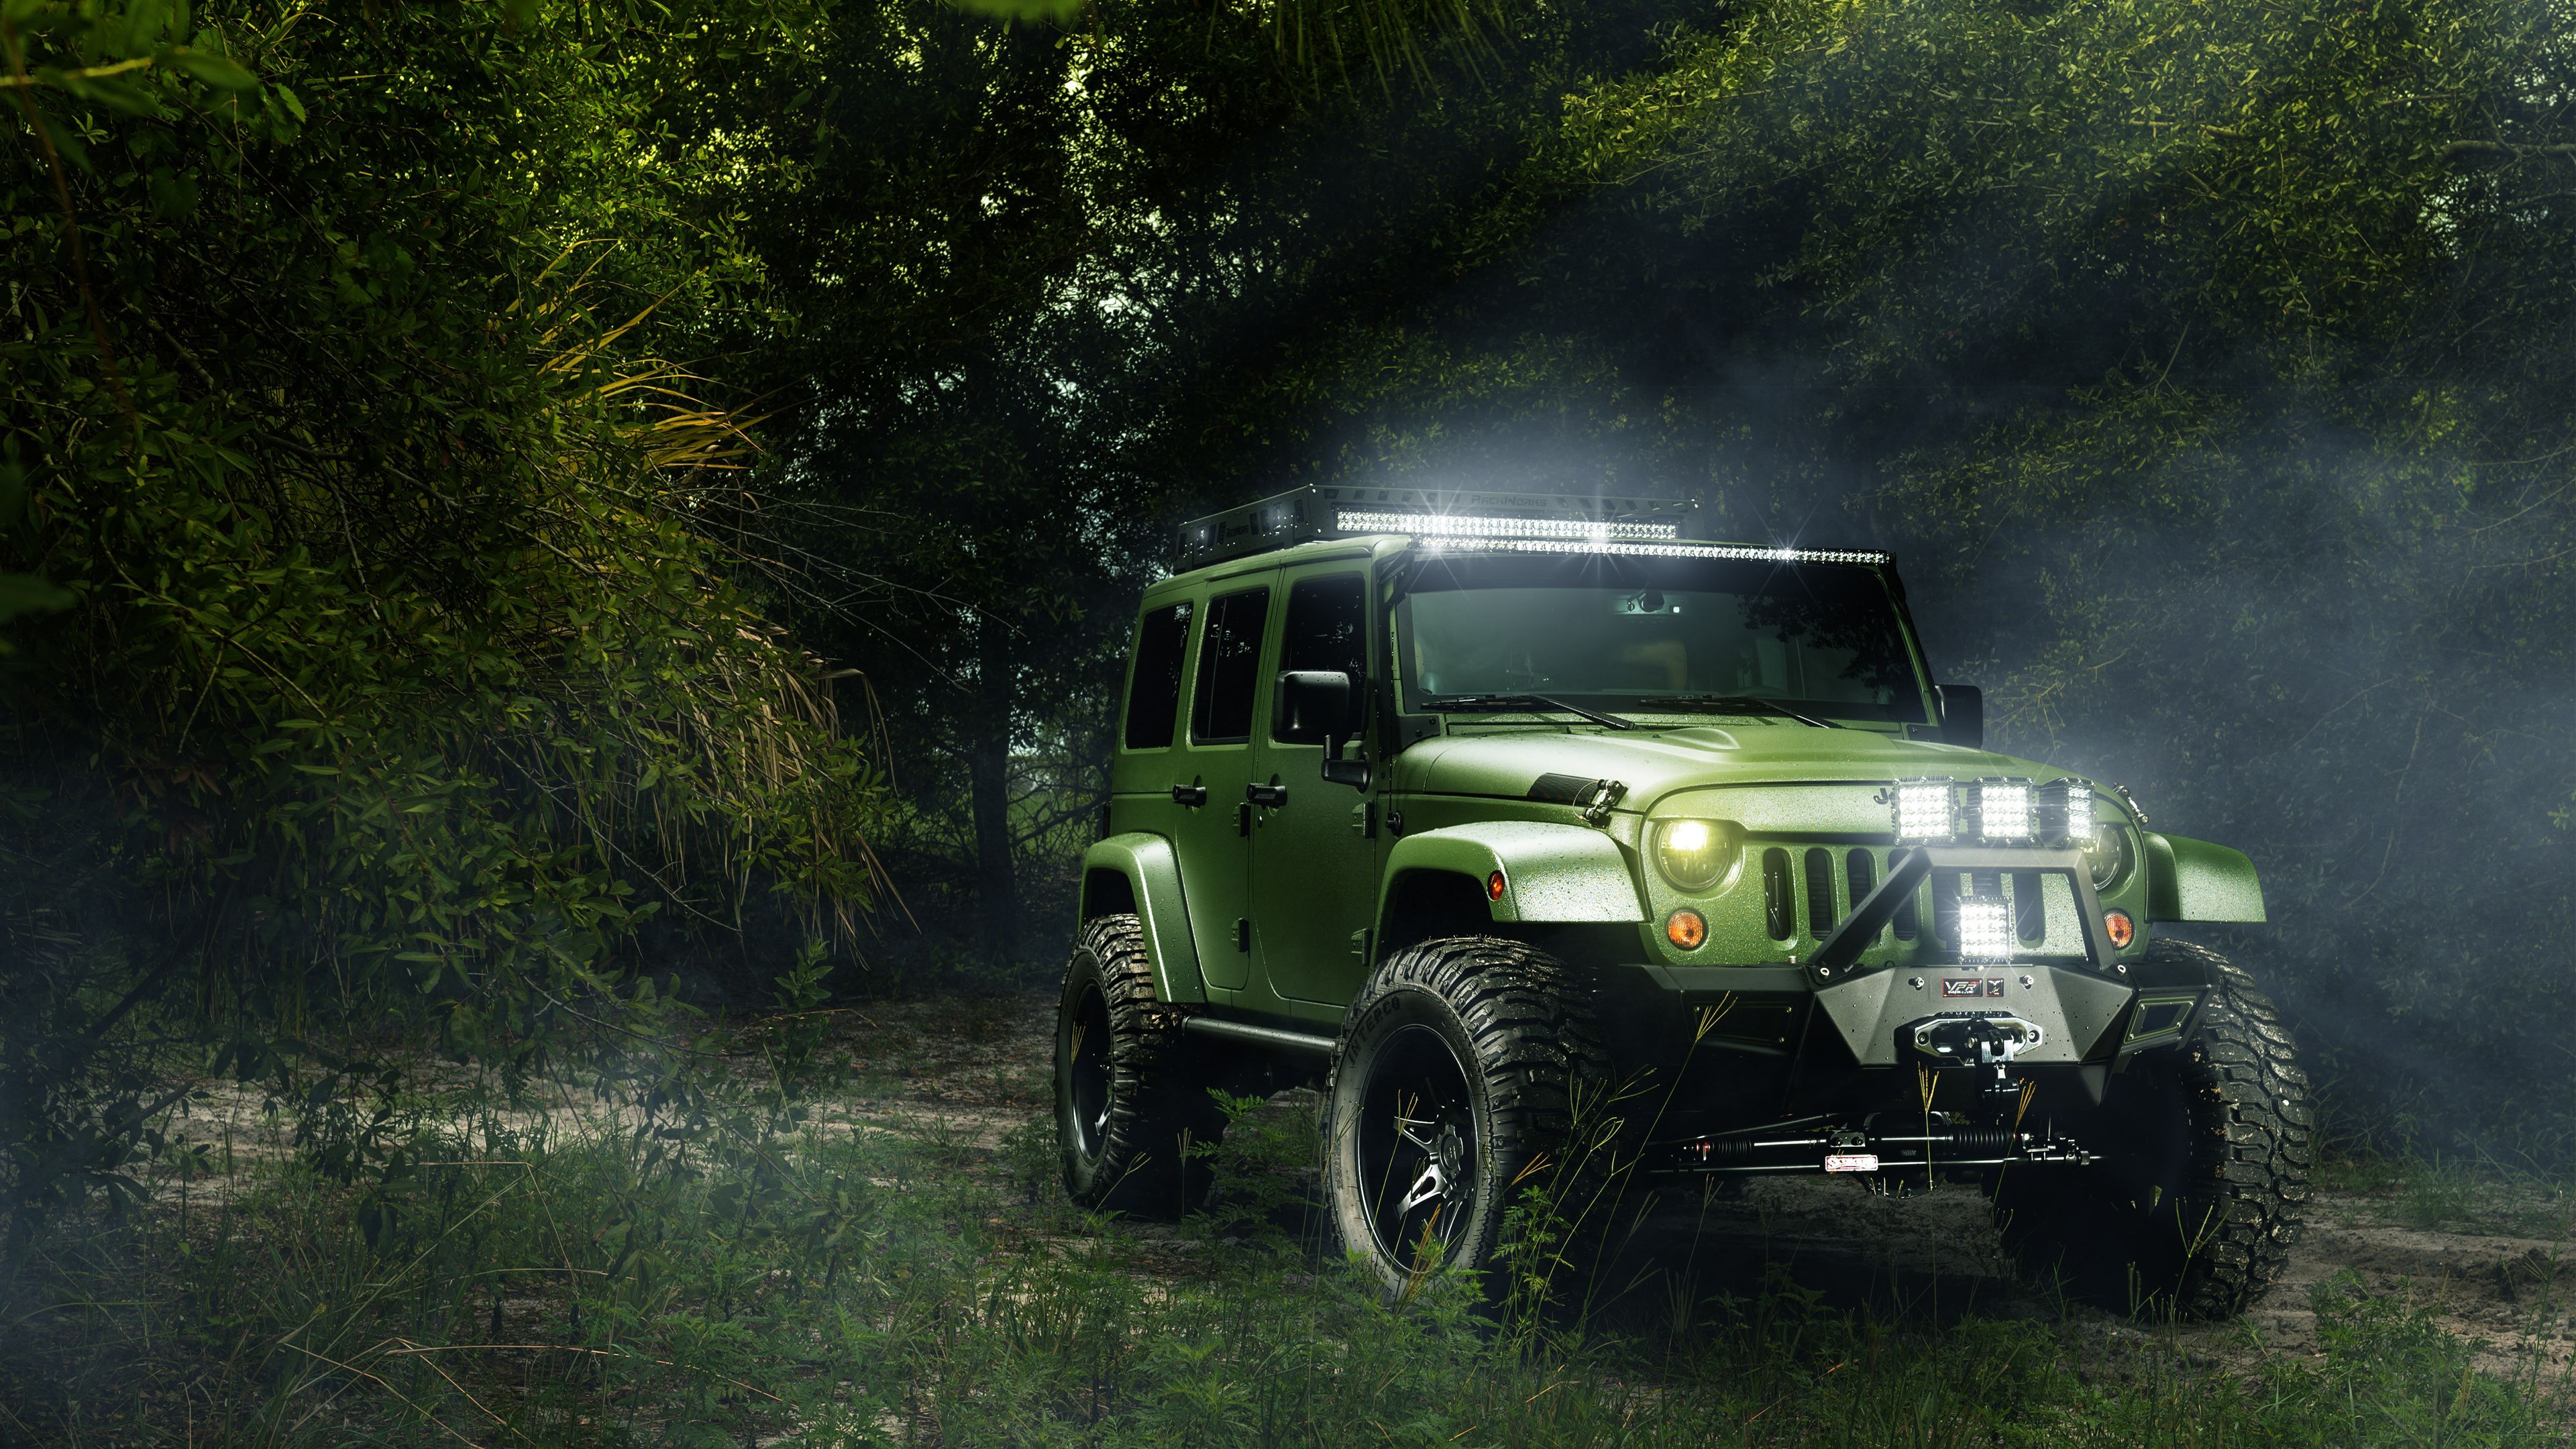 Jeep Wrangler Wallpapers - Top Free